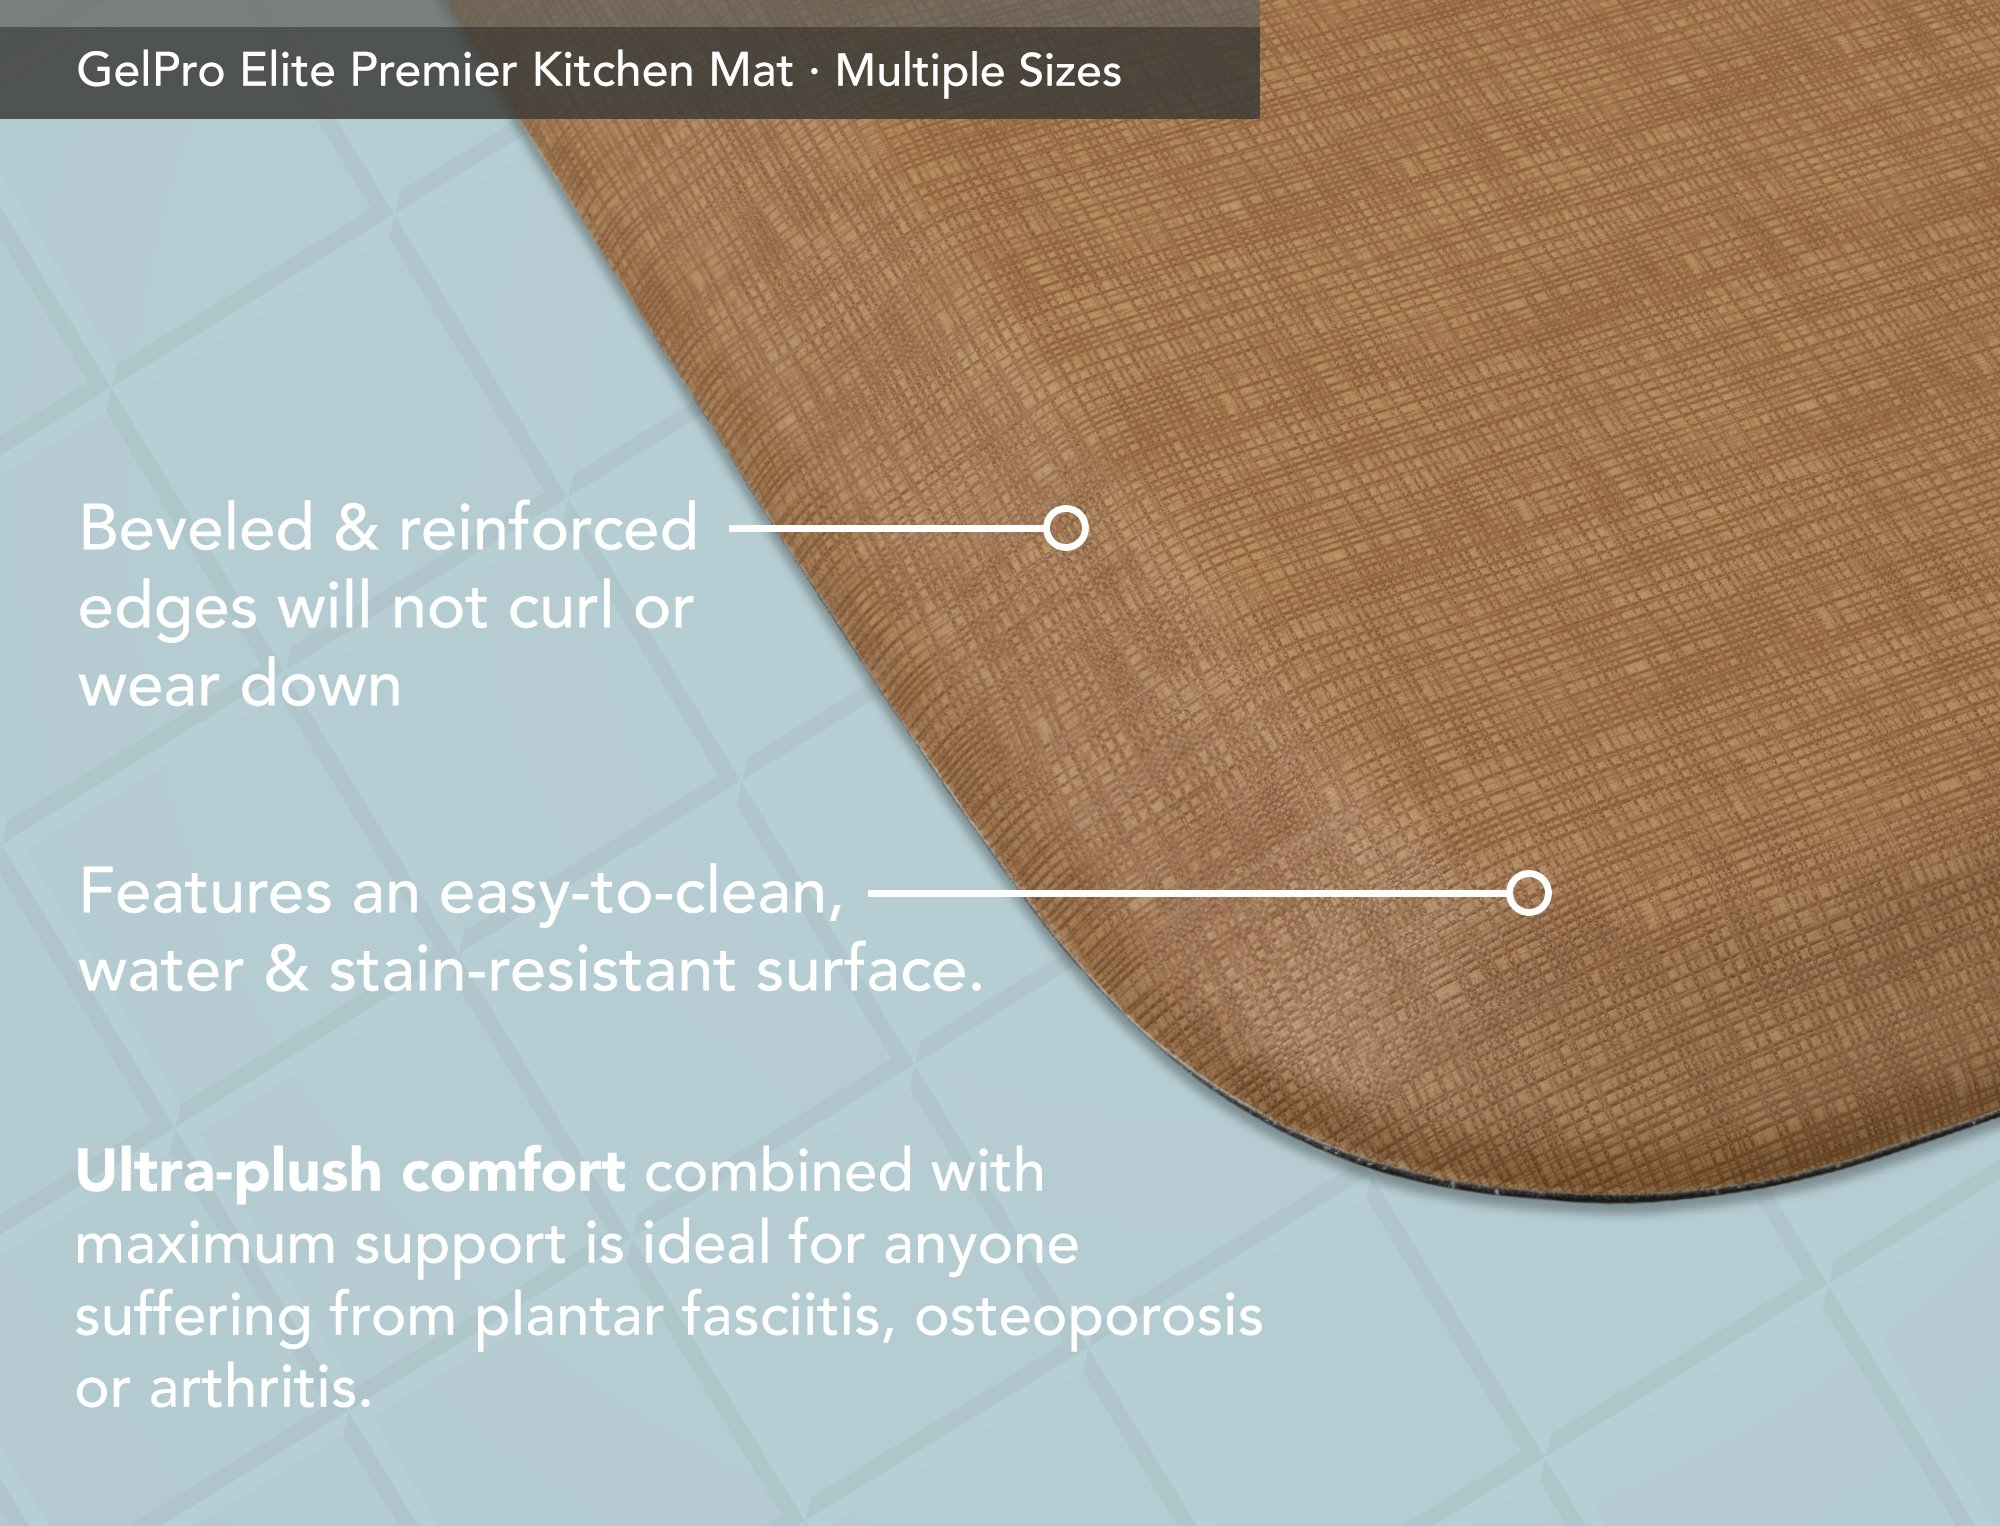 "GelPro Elite Premier Anti-Fatigue Kitchen Comfort Floor Mat, 20x48"", Linen Khaki Stain Resistant Surface with Therapeutic Gel and Energy-return Foam for Health and Wellness by GelPro (Image #4)"